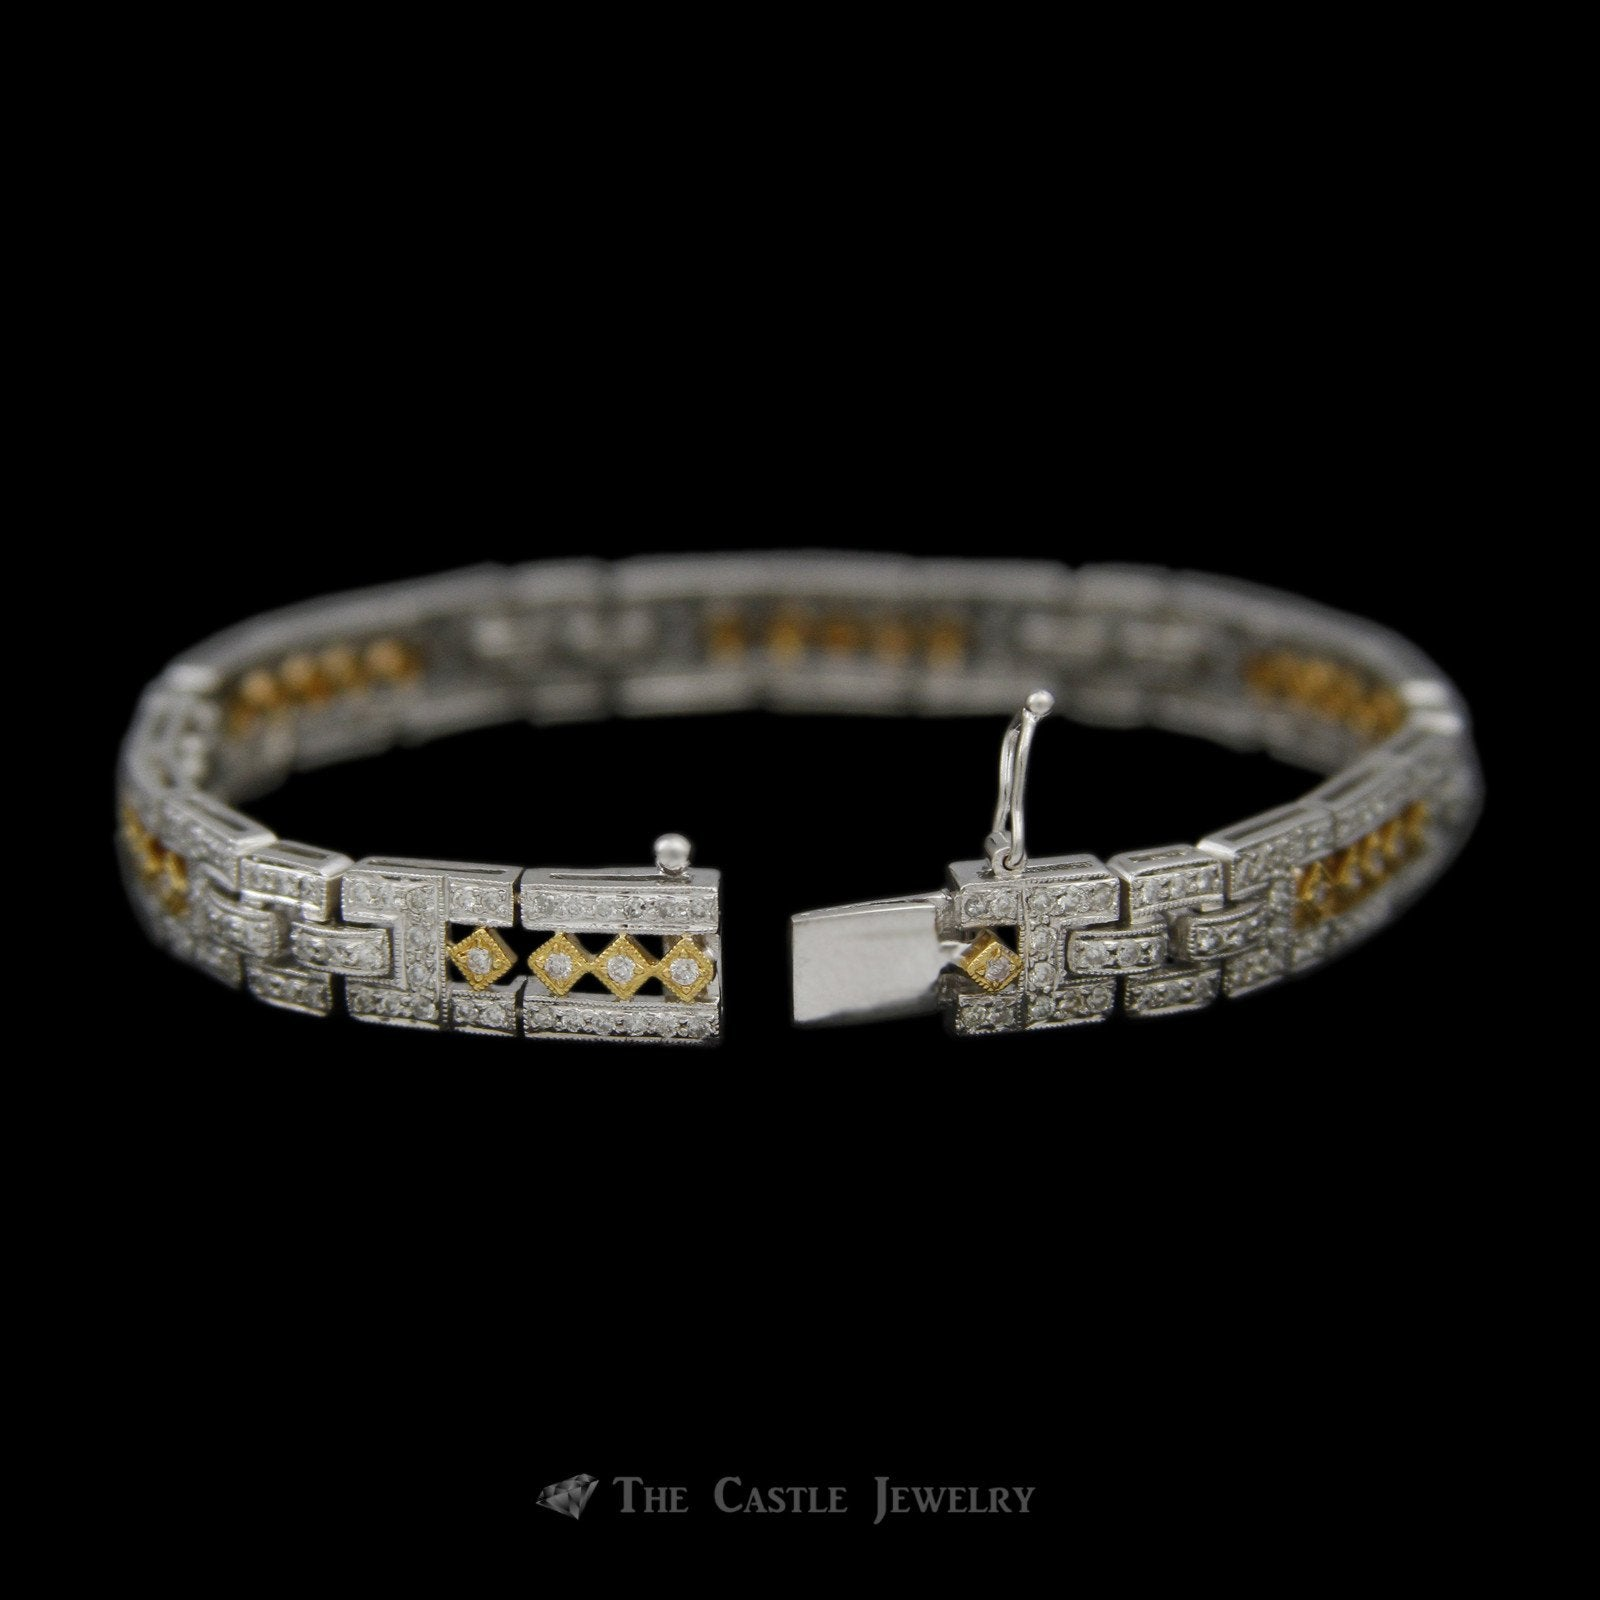 Open Link Design 2.50cttw Diamond Bracelet in 18K White Gold w/ Yellow Accents-1